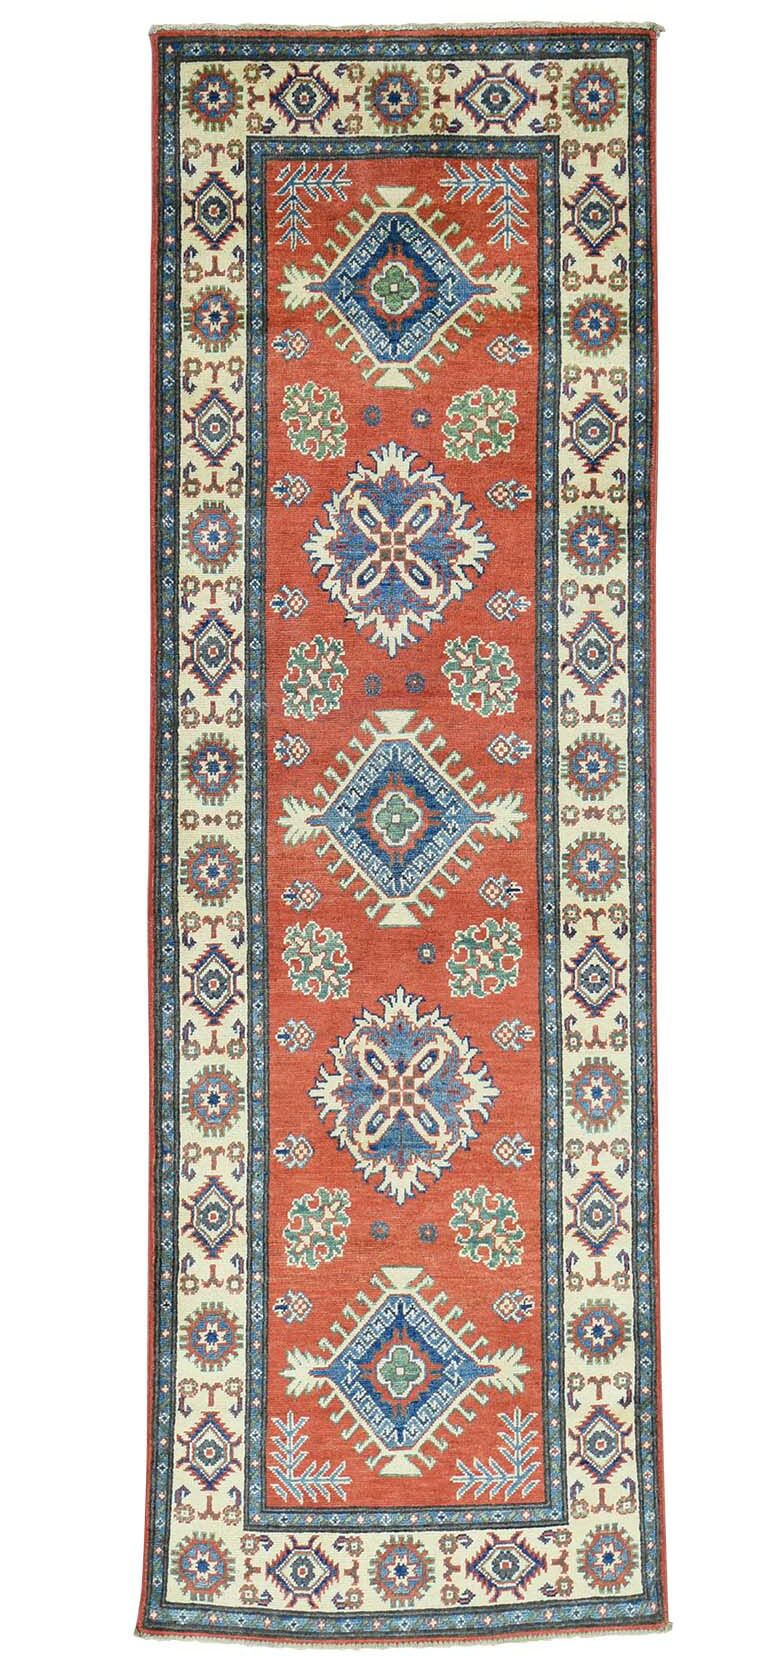 One-of-a-Kind Kempinski Overdyed Barjasta Vintage Hand-Knotted Red/Navy Blue Area Rug